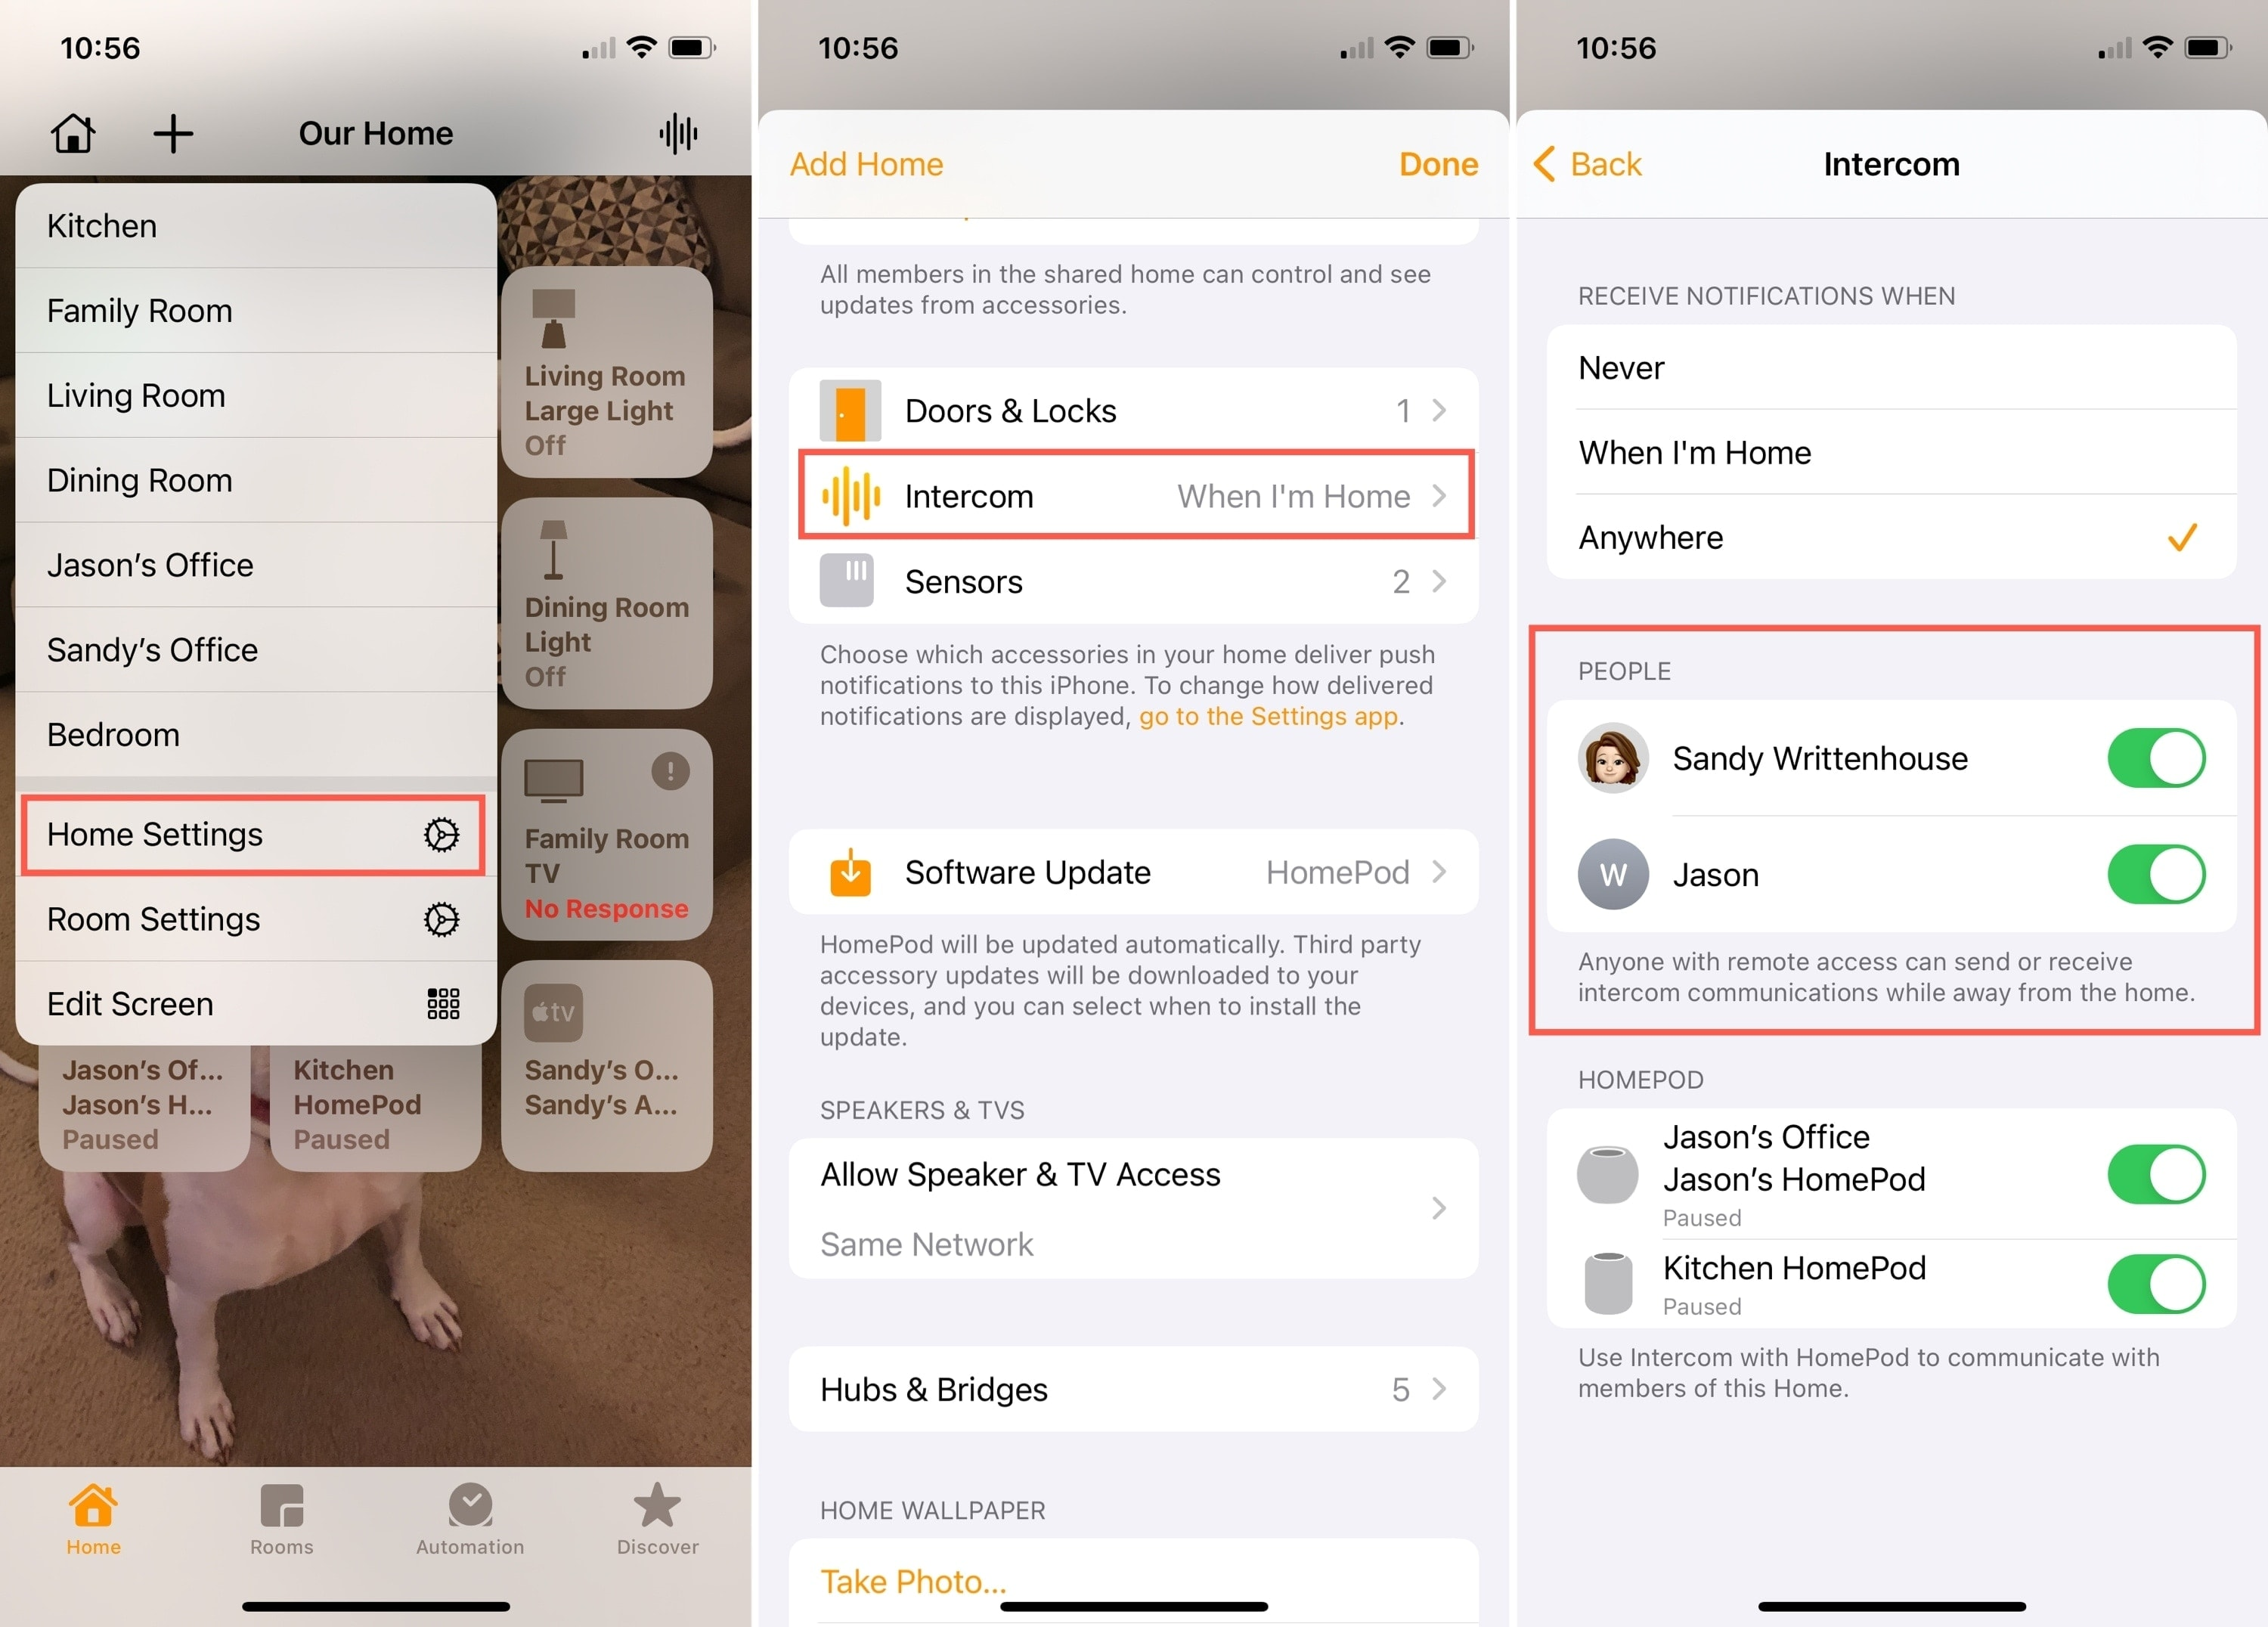 Home Settings for Intercom People on iPhone